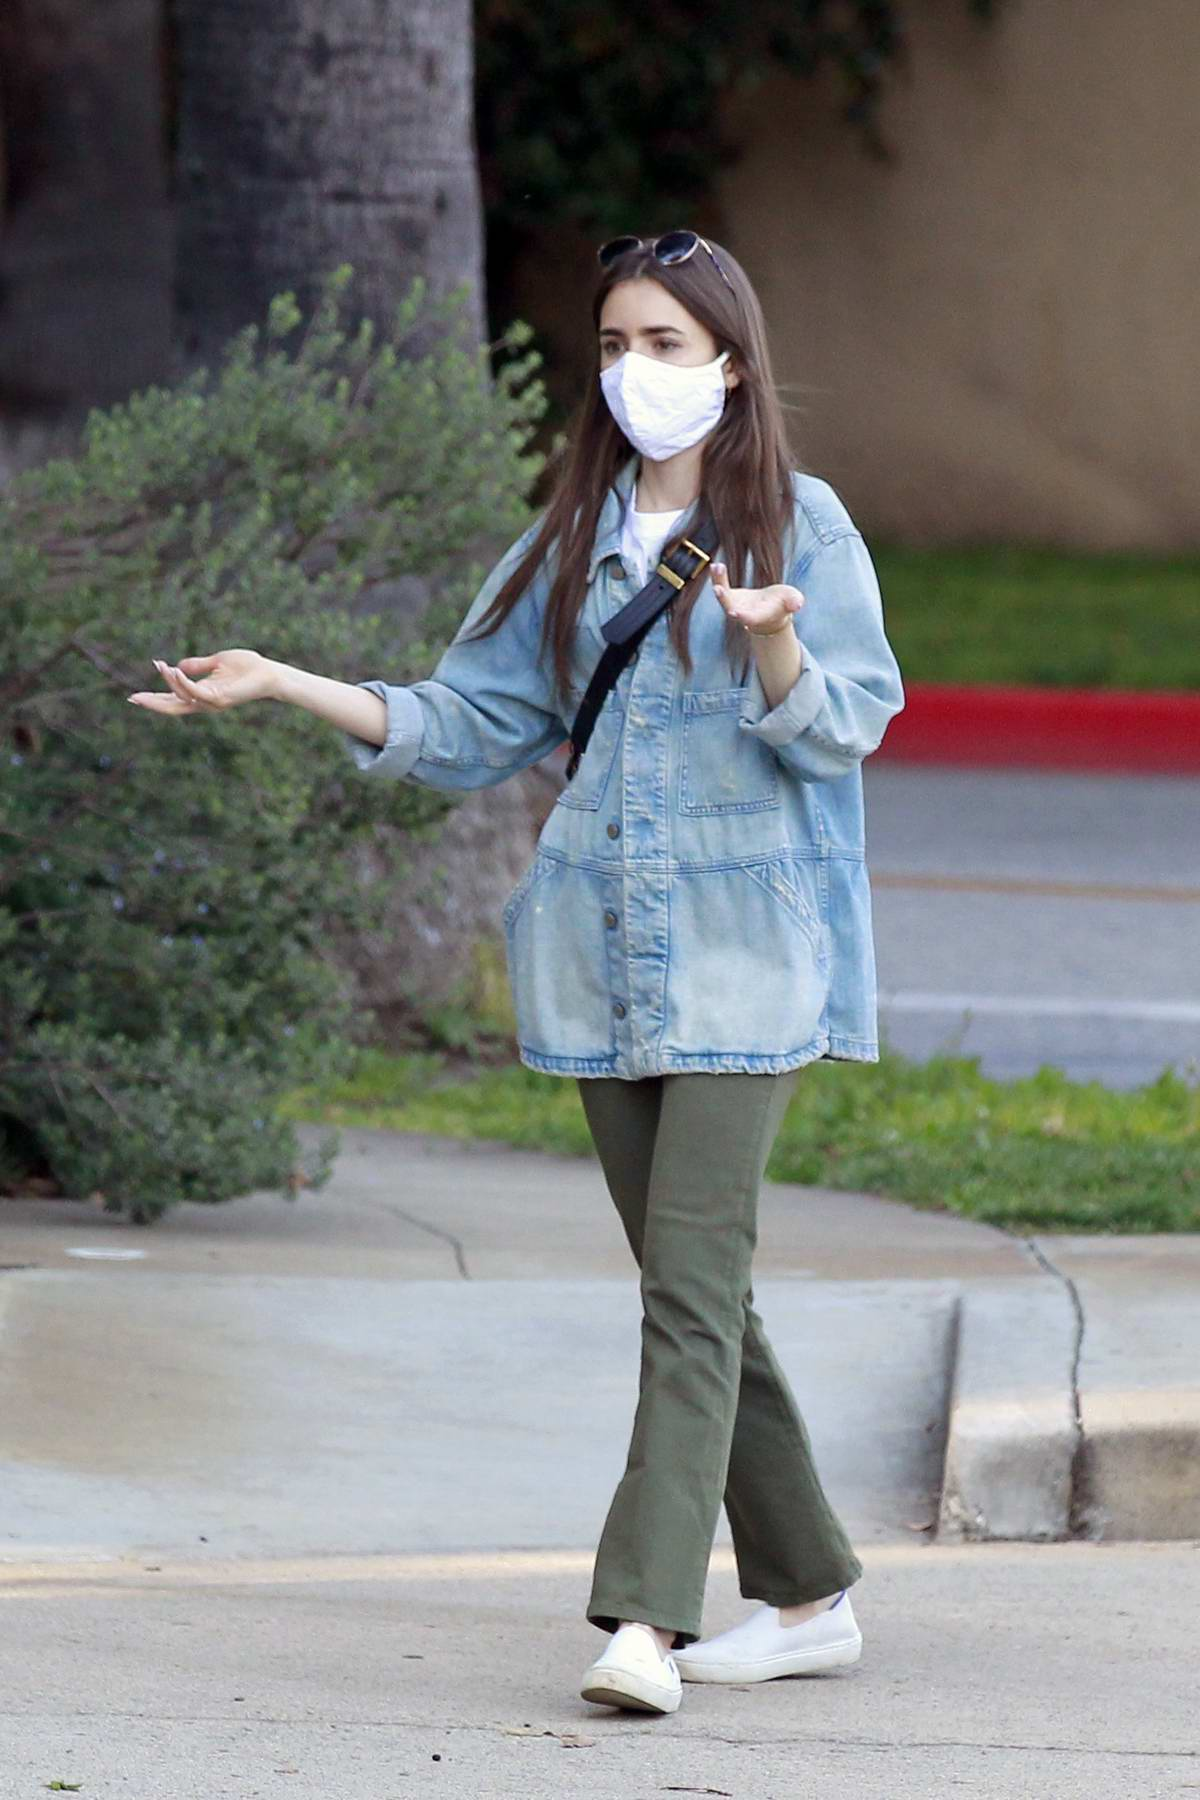 Lily Collins seen wearing a mask as she walks around her neighborhood in Beverly Hills, California